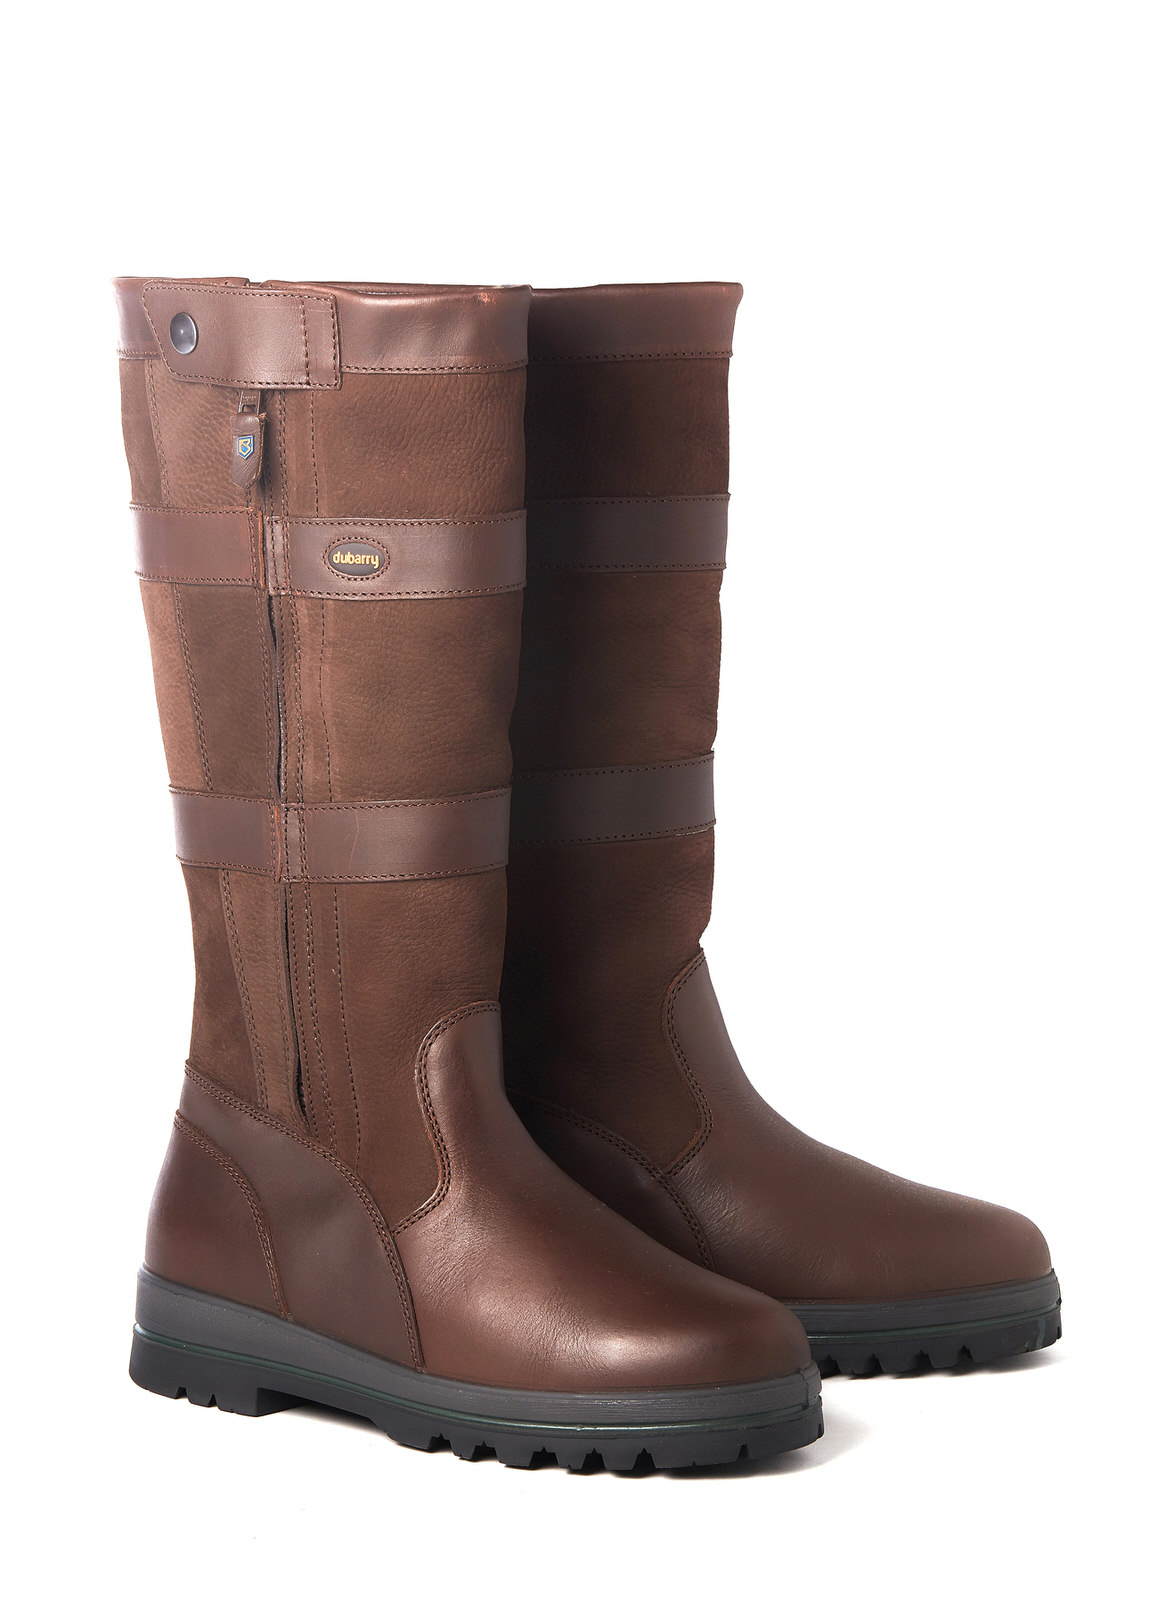 Wexford Country Boot - Java